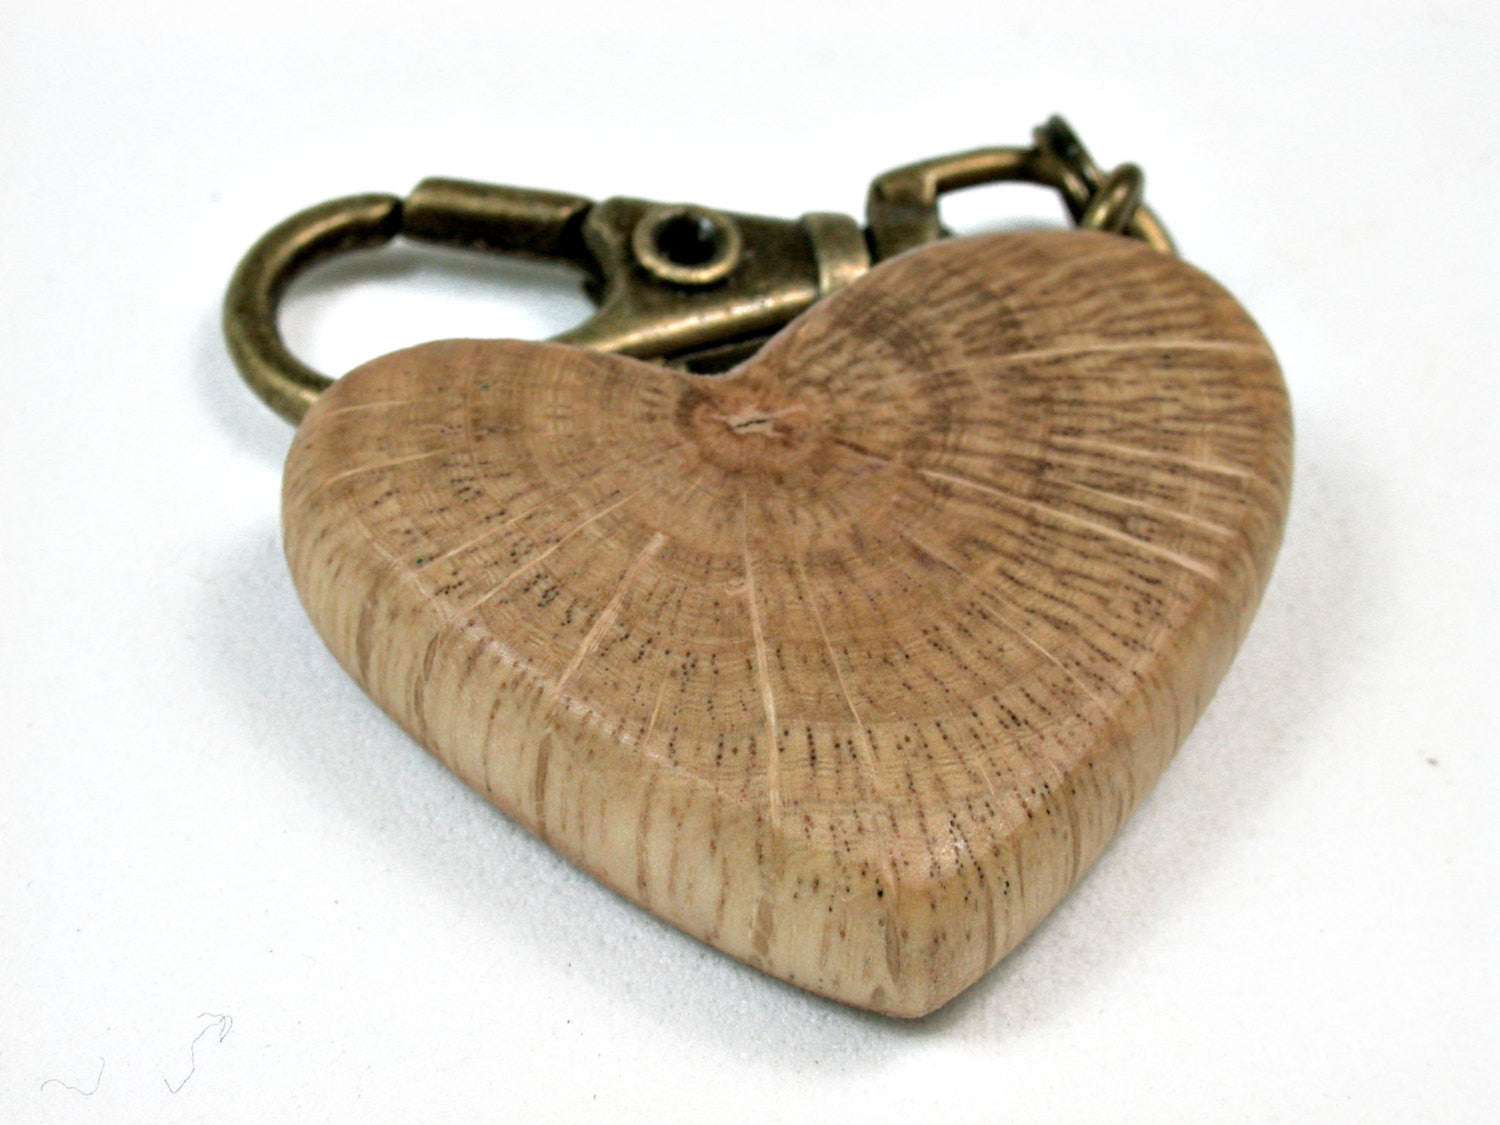 LV-2018 Coast Live Oak Wooden Heart Charm, Keychain, Wedding Favor-HAND CARVED